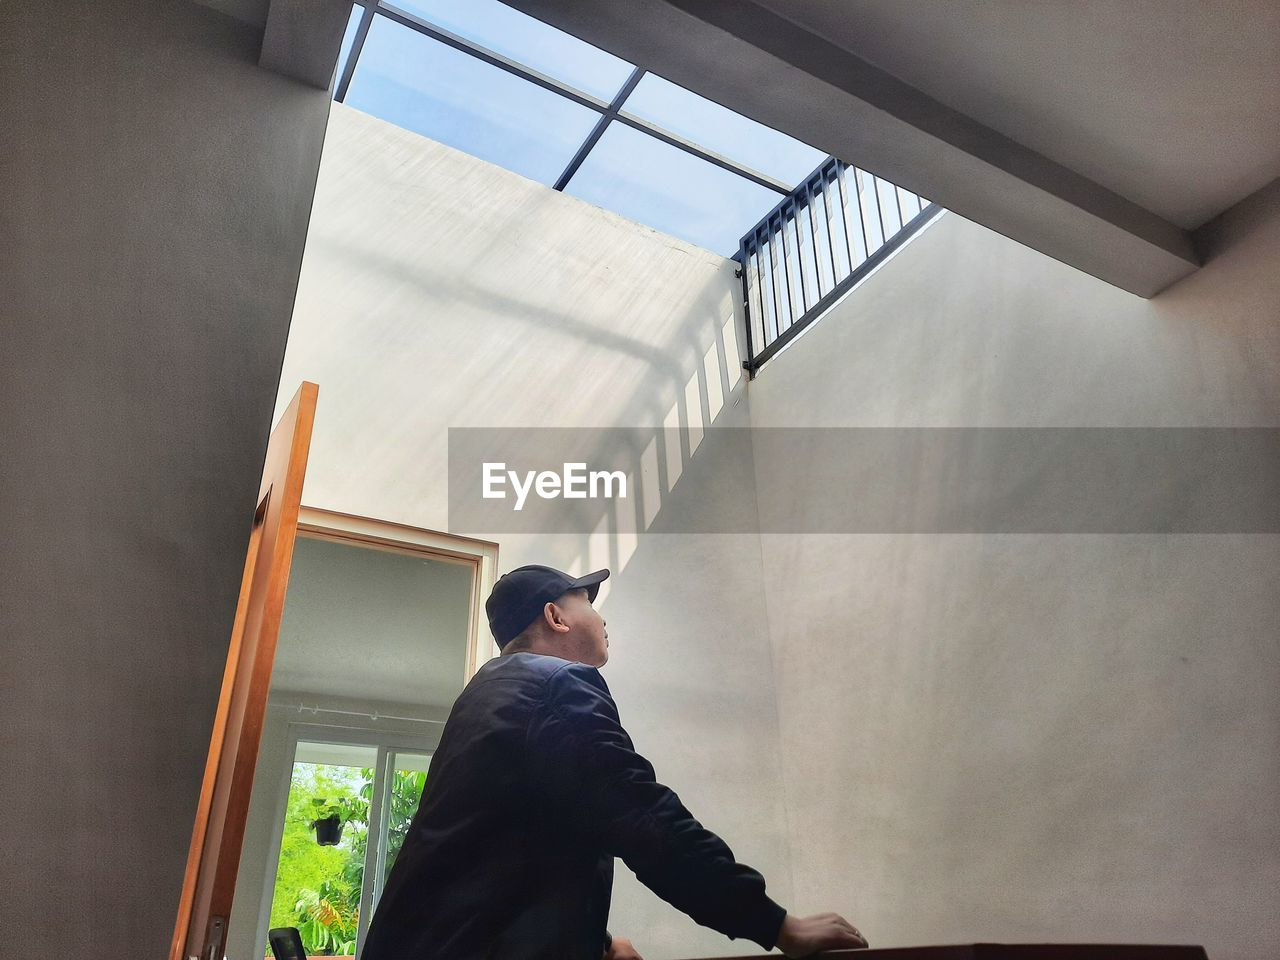 LOW ANGLE VIEW OF MAN LOOKING THROUGH WINDOW AT WALL